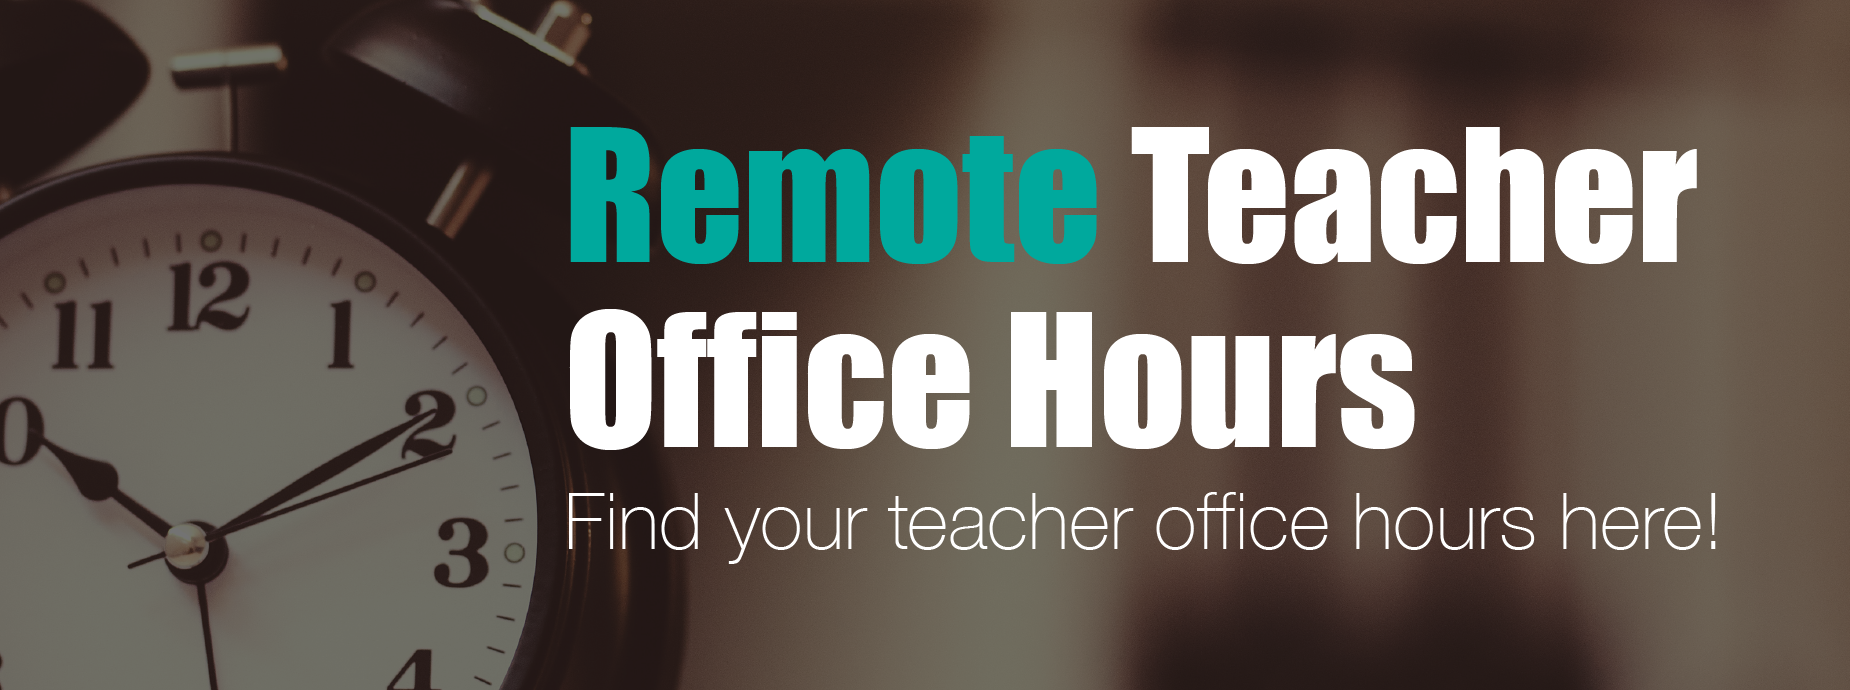 Remote Teacher Office Hours